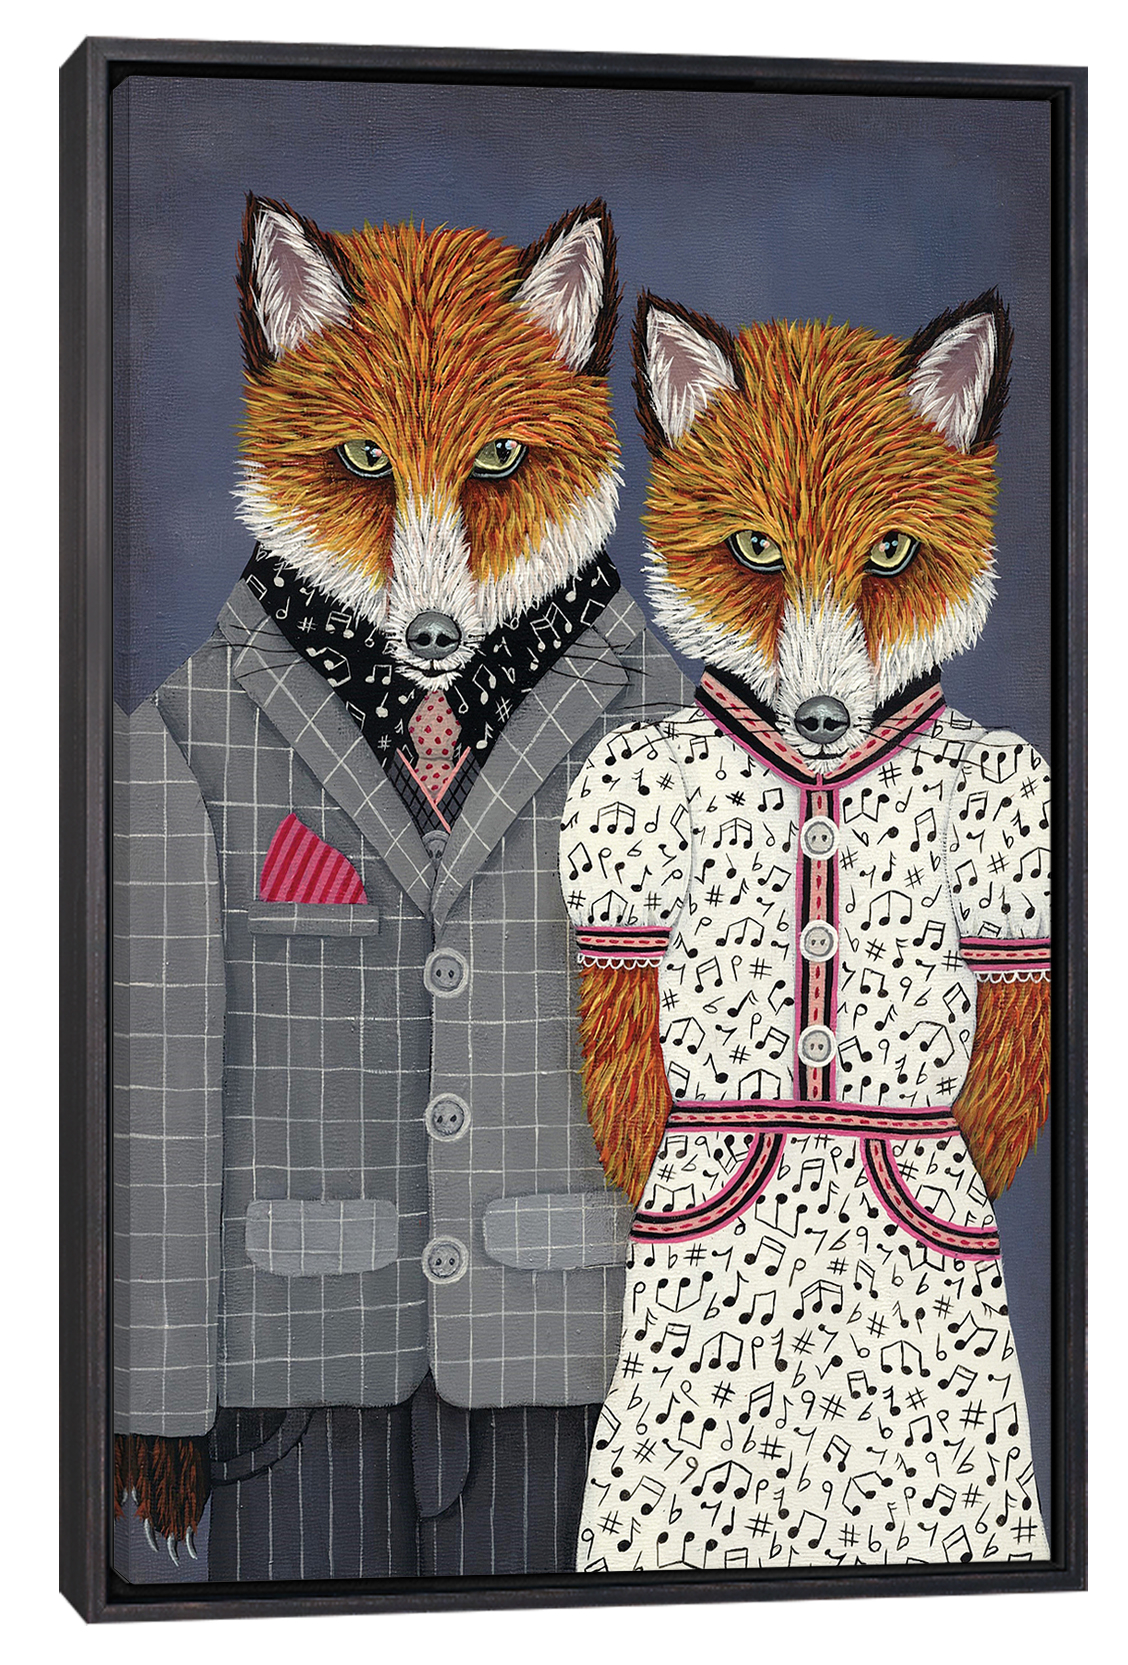 two foxes wearing outfits with music note accents, one in a gray suit and the other in a white dress